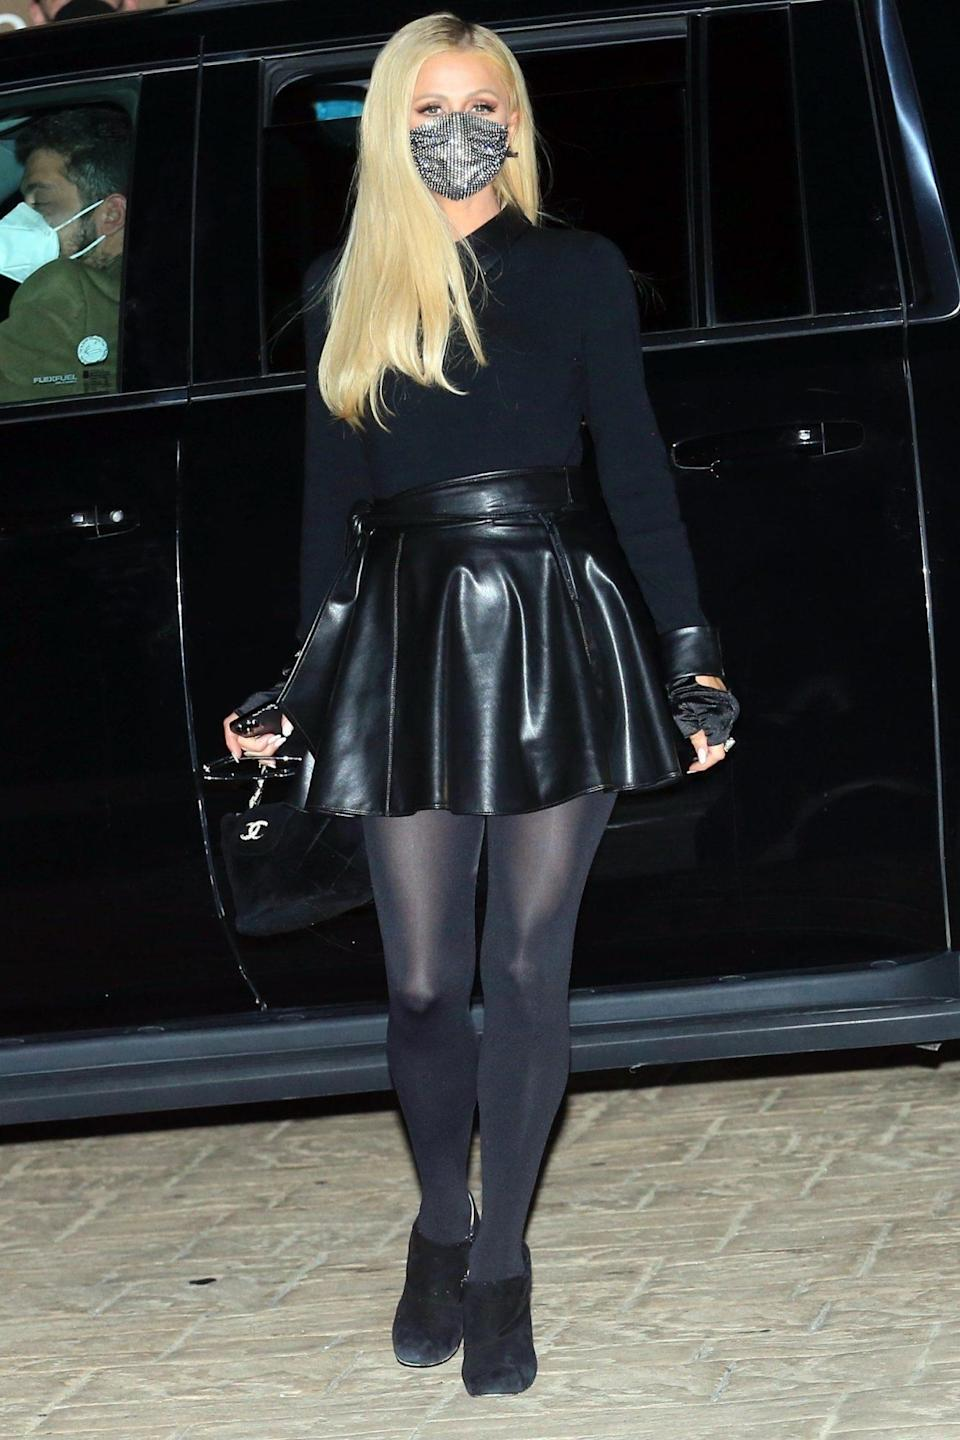 <p>Paris Hilton dresses in all black as she steps out on a date night with fiancé Carter Reum in Malibu on Tuesday.</p>